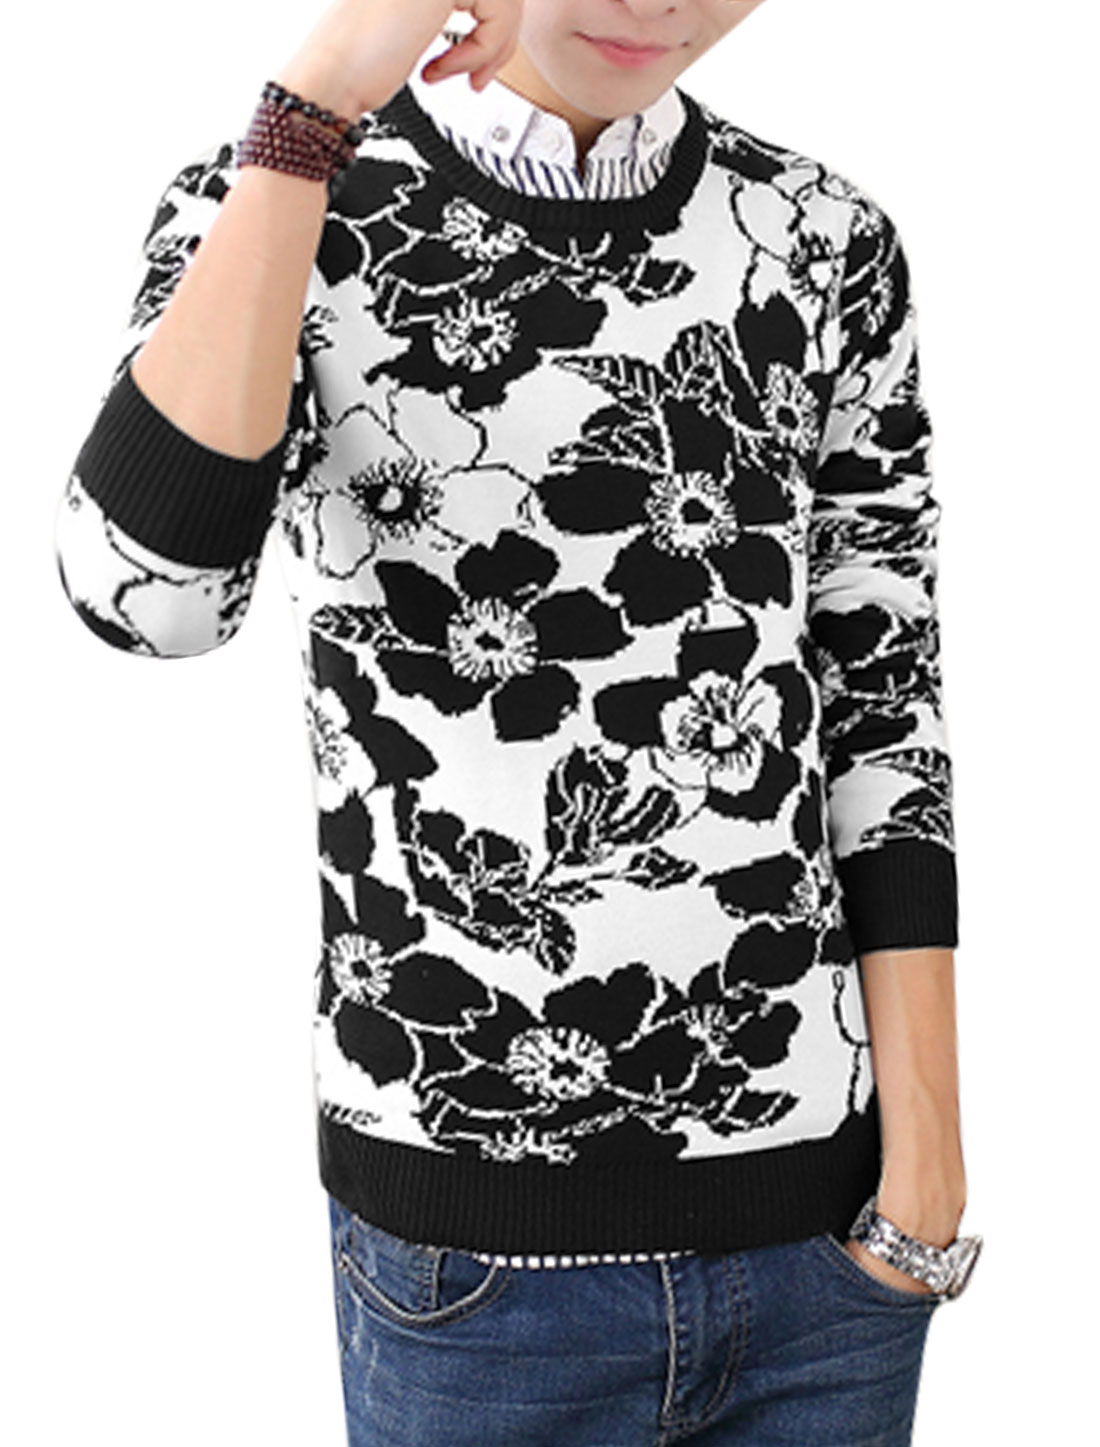 Men Black White Pullover Floral Prints Ribbed Trim Slim Fit Sweater S